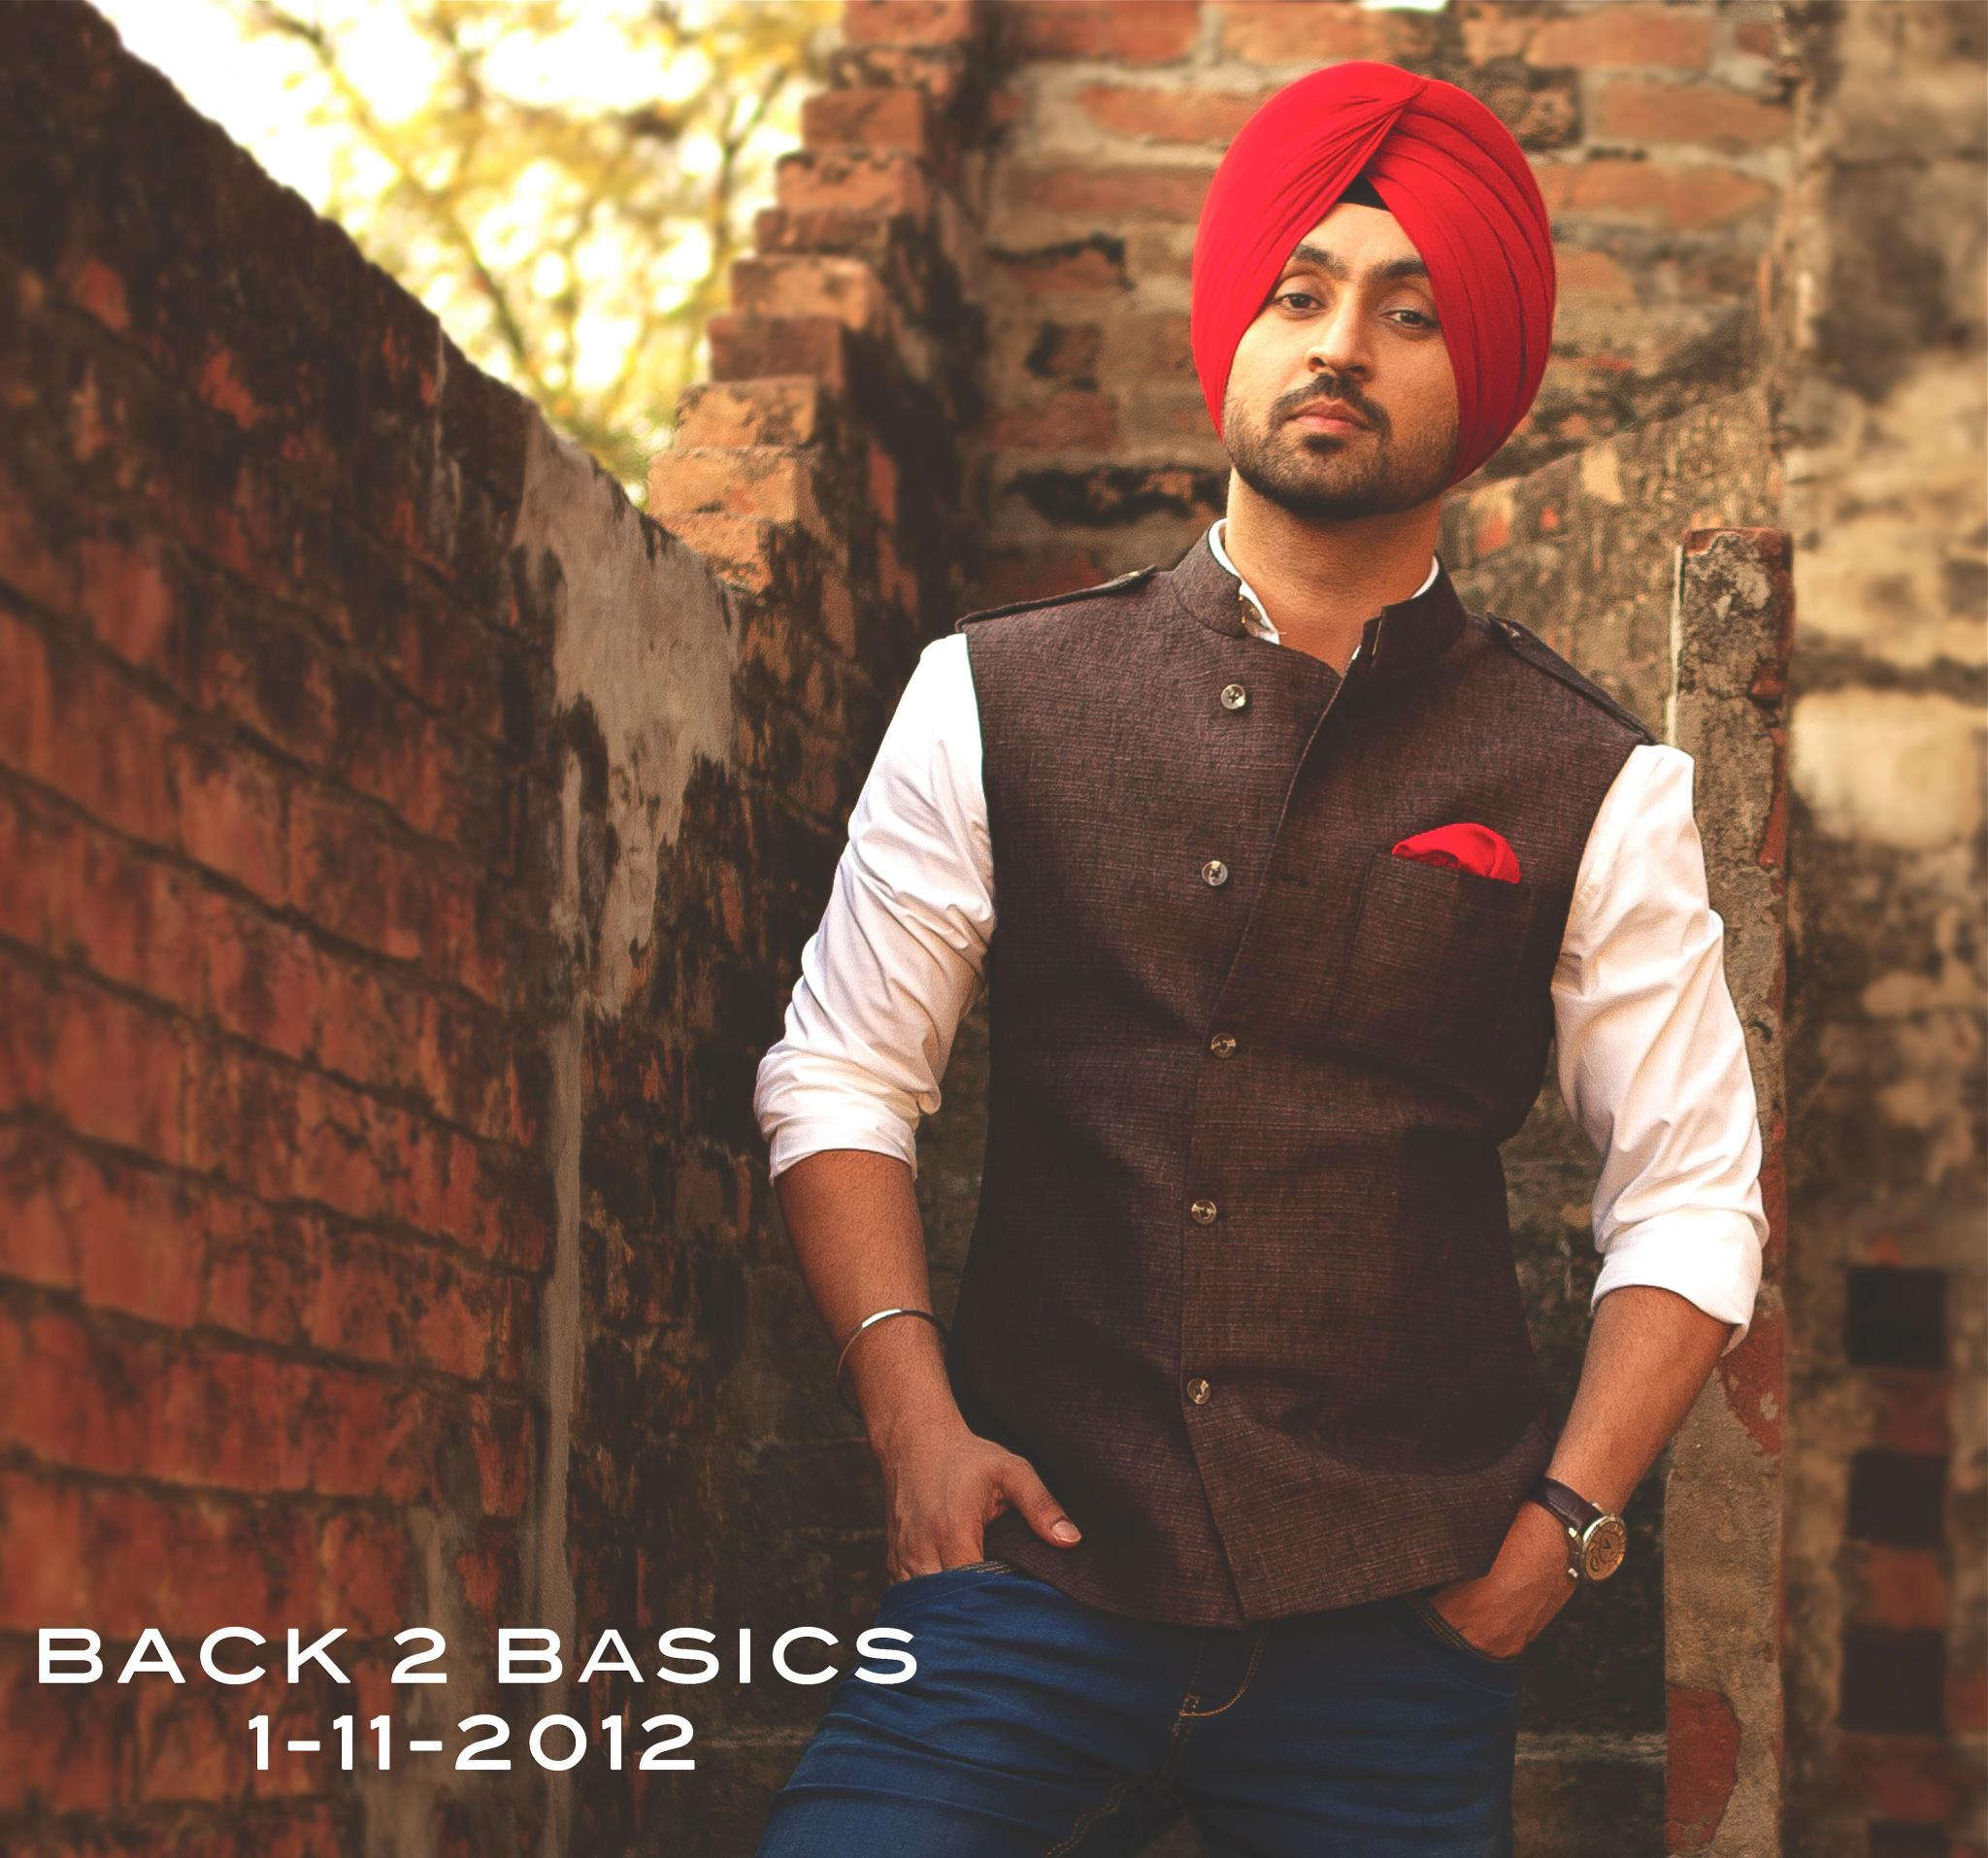 Bela Bela Song Download Diljit: Diljit Dosanjh Smiling Face, Full HD 2K Wallpaper